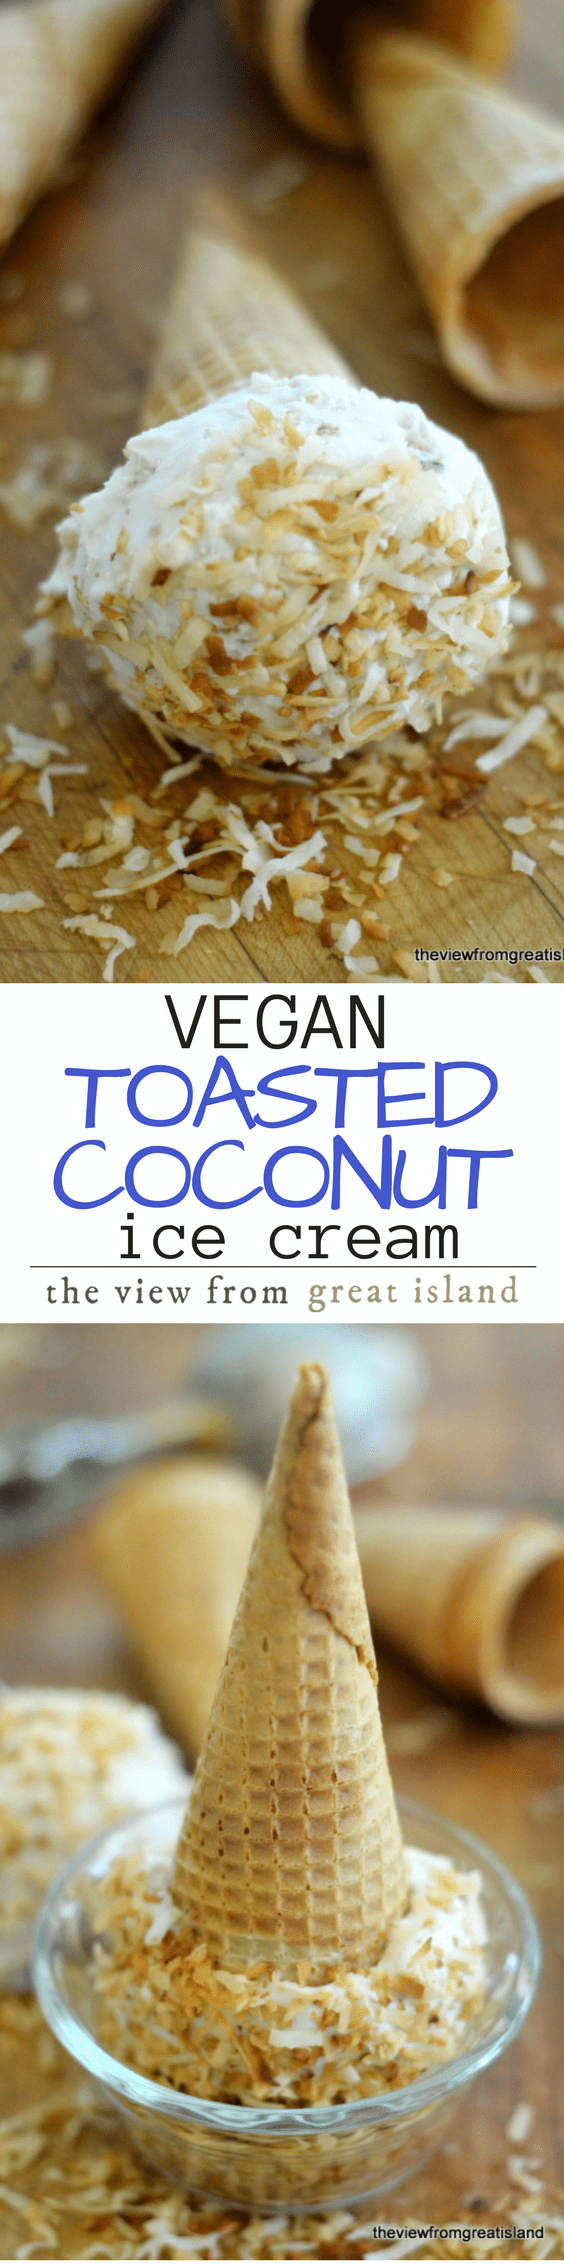 Vegan Toasted Coconut Ice Cream ~ you'd never know this luscious homemade ice cream was non-dairy ~ it's got a wonderfully creamy texture and a fabulous coco-nutty flavor!